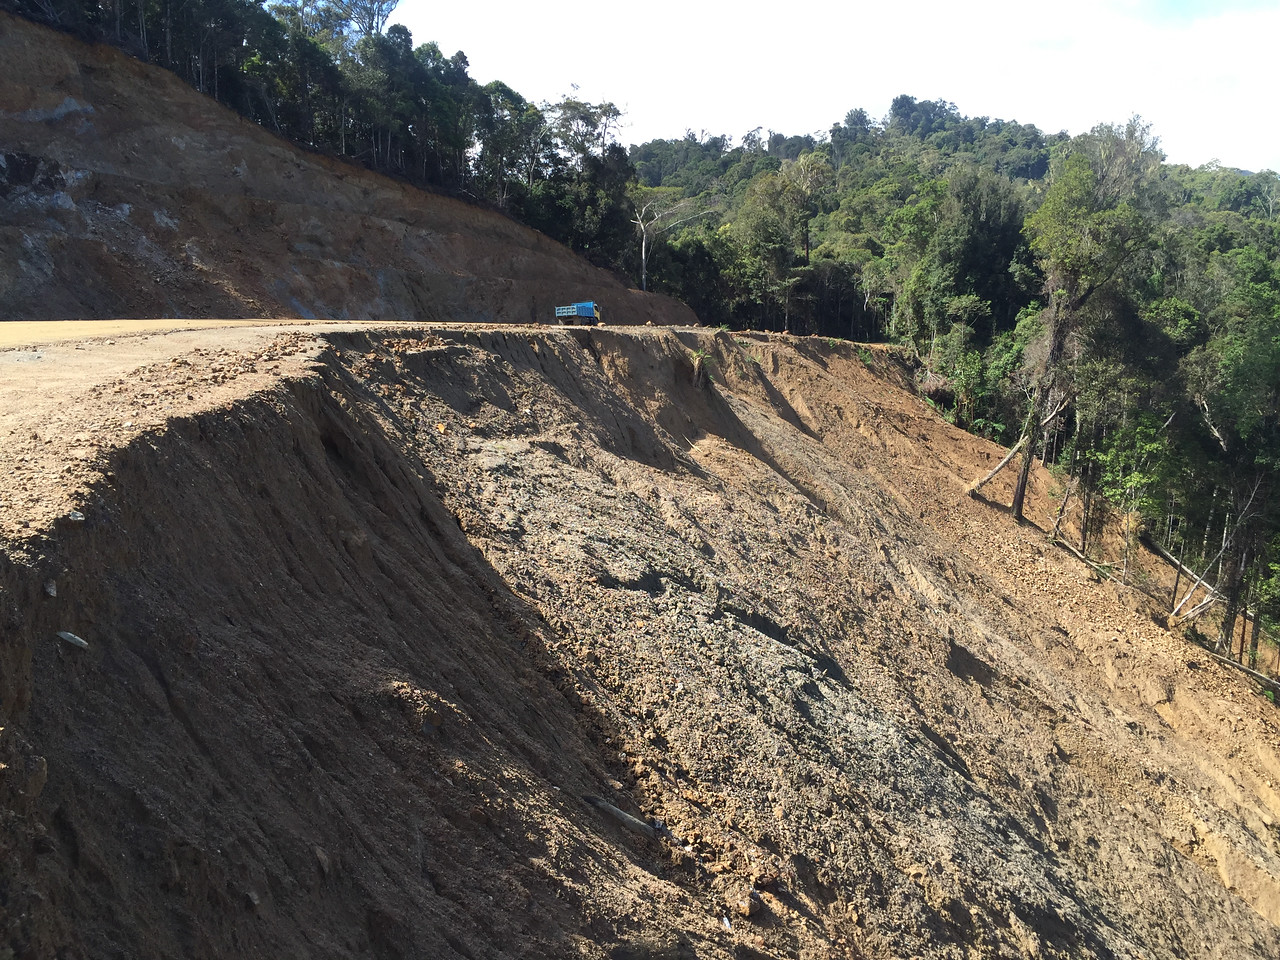 A new road, cutting a deep gash into the mountainside.